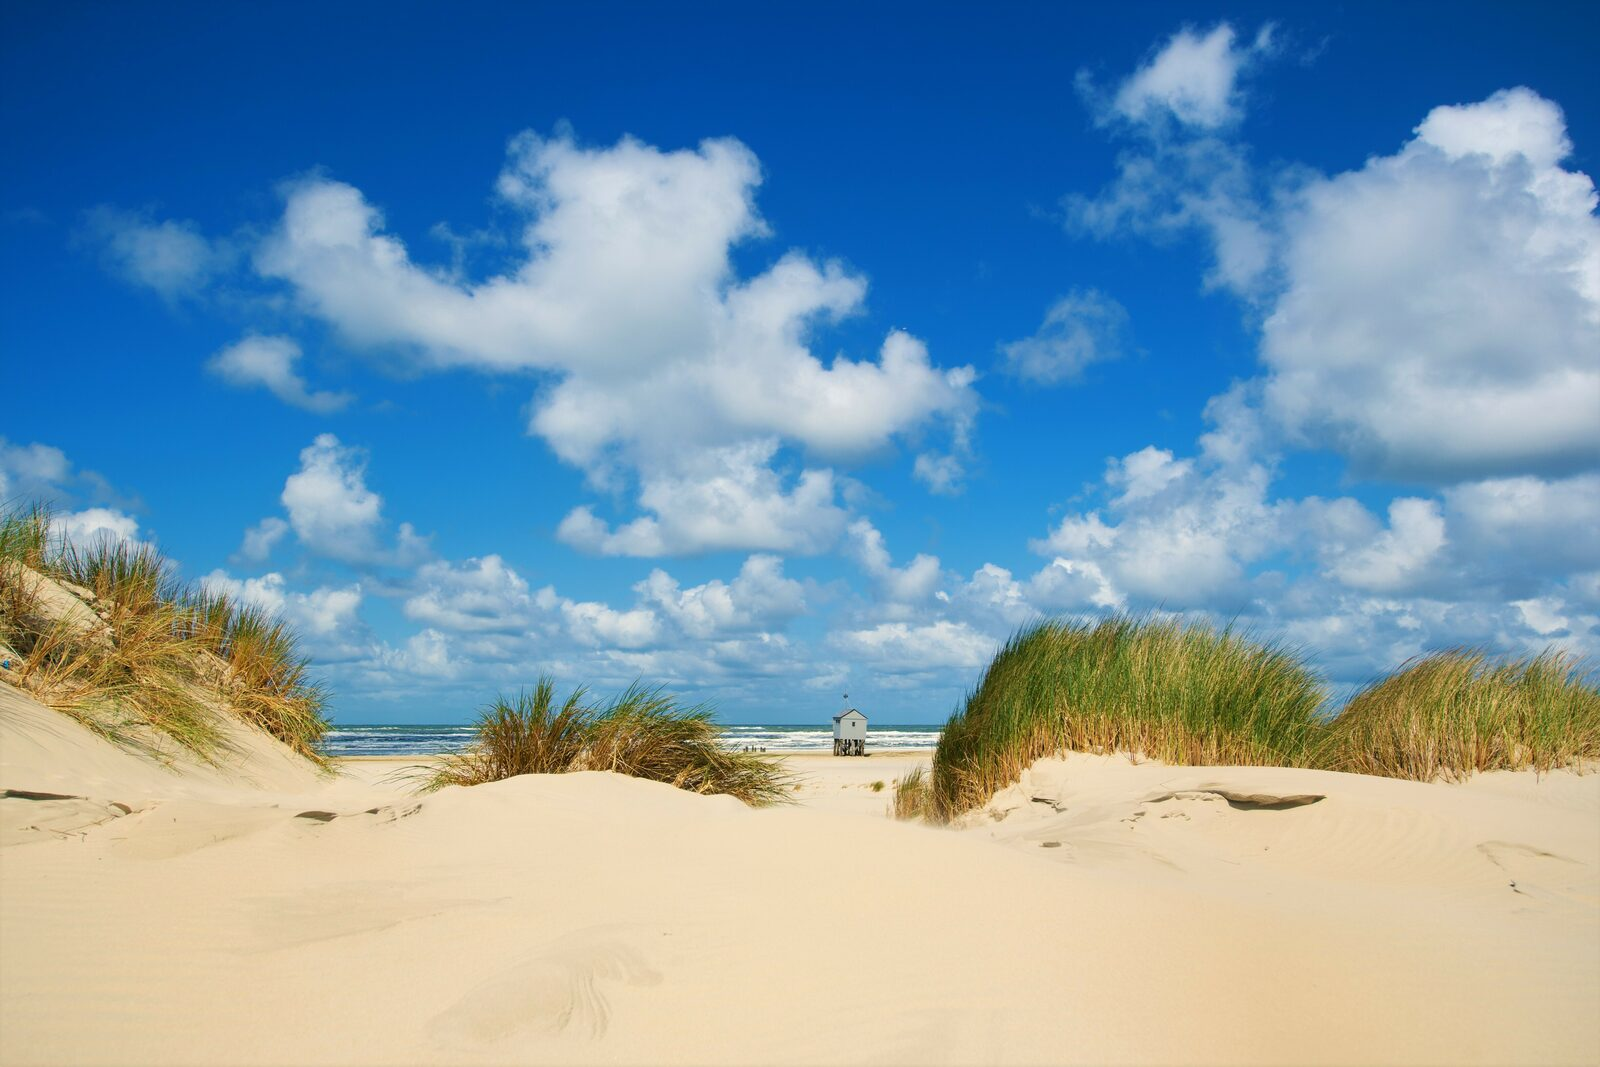 Do you want to experience the true island feeling? Come visit Terschelling!